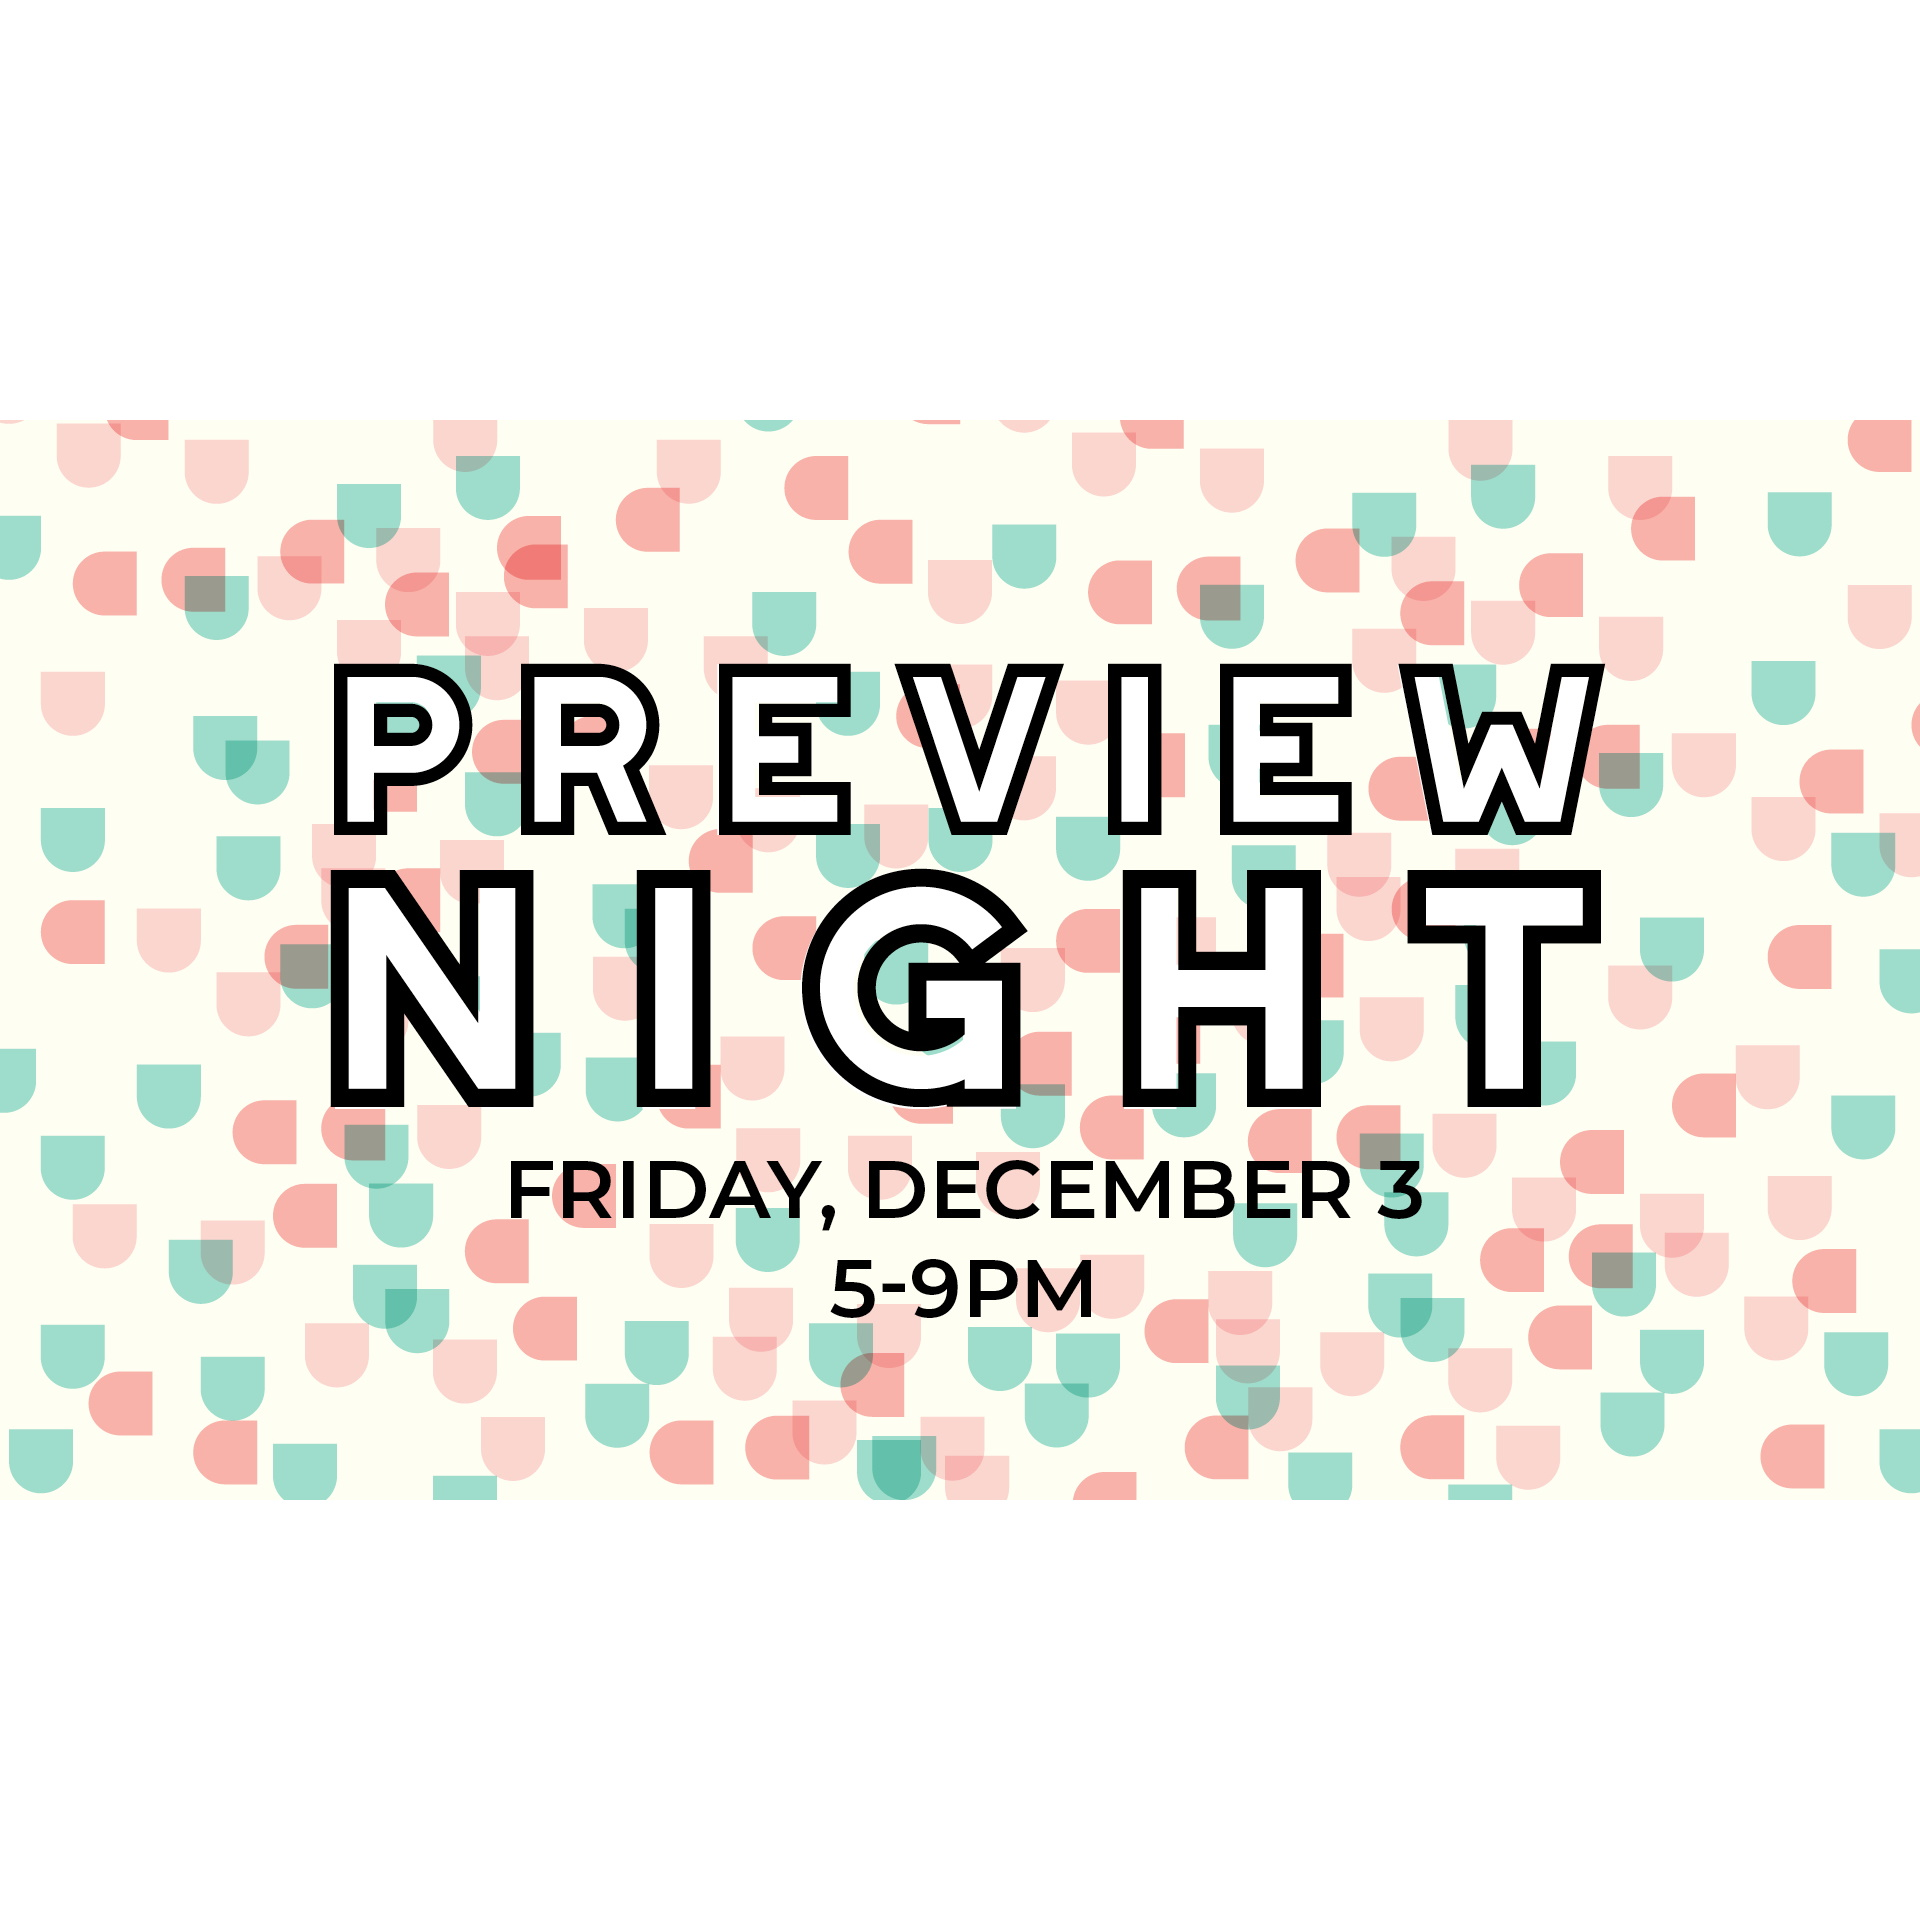 Preview Night